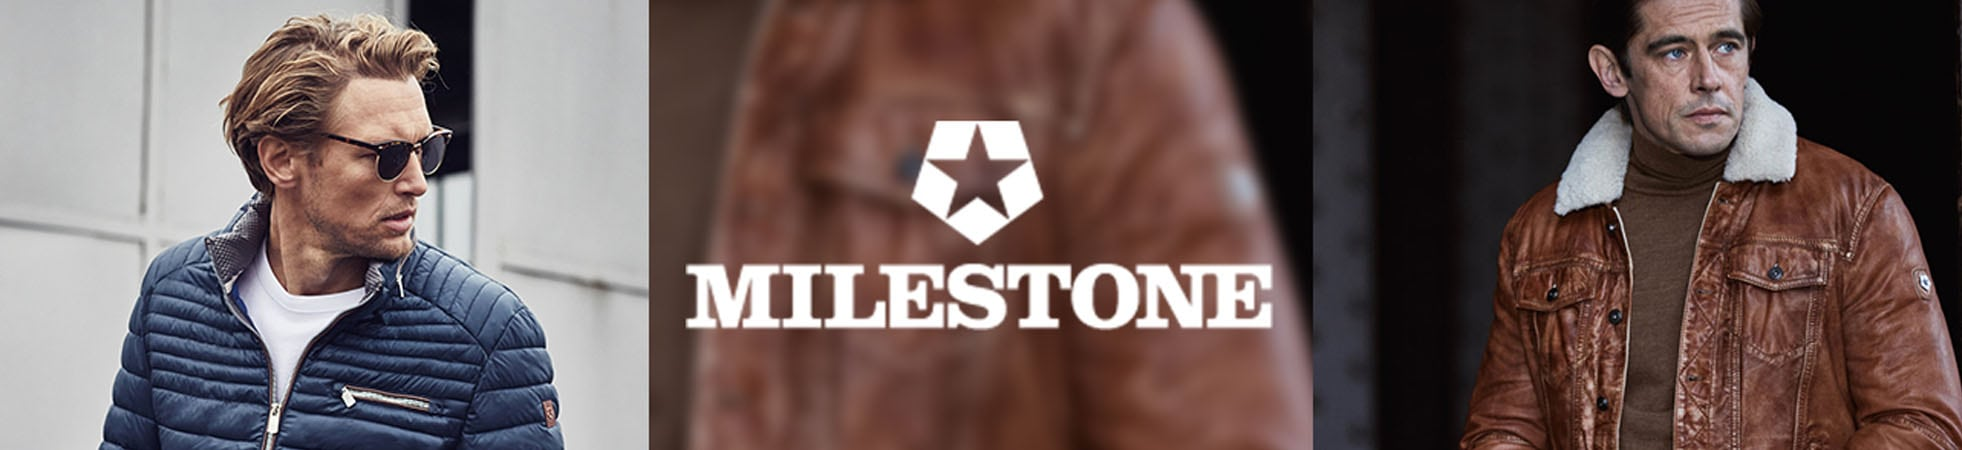 Milestone Jackets and Coats Webshop